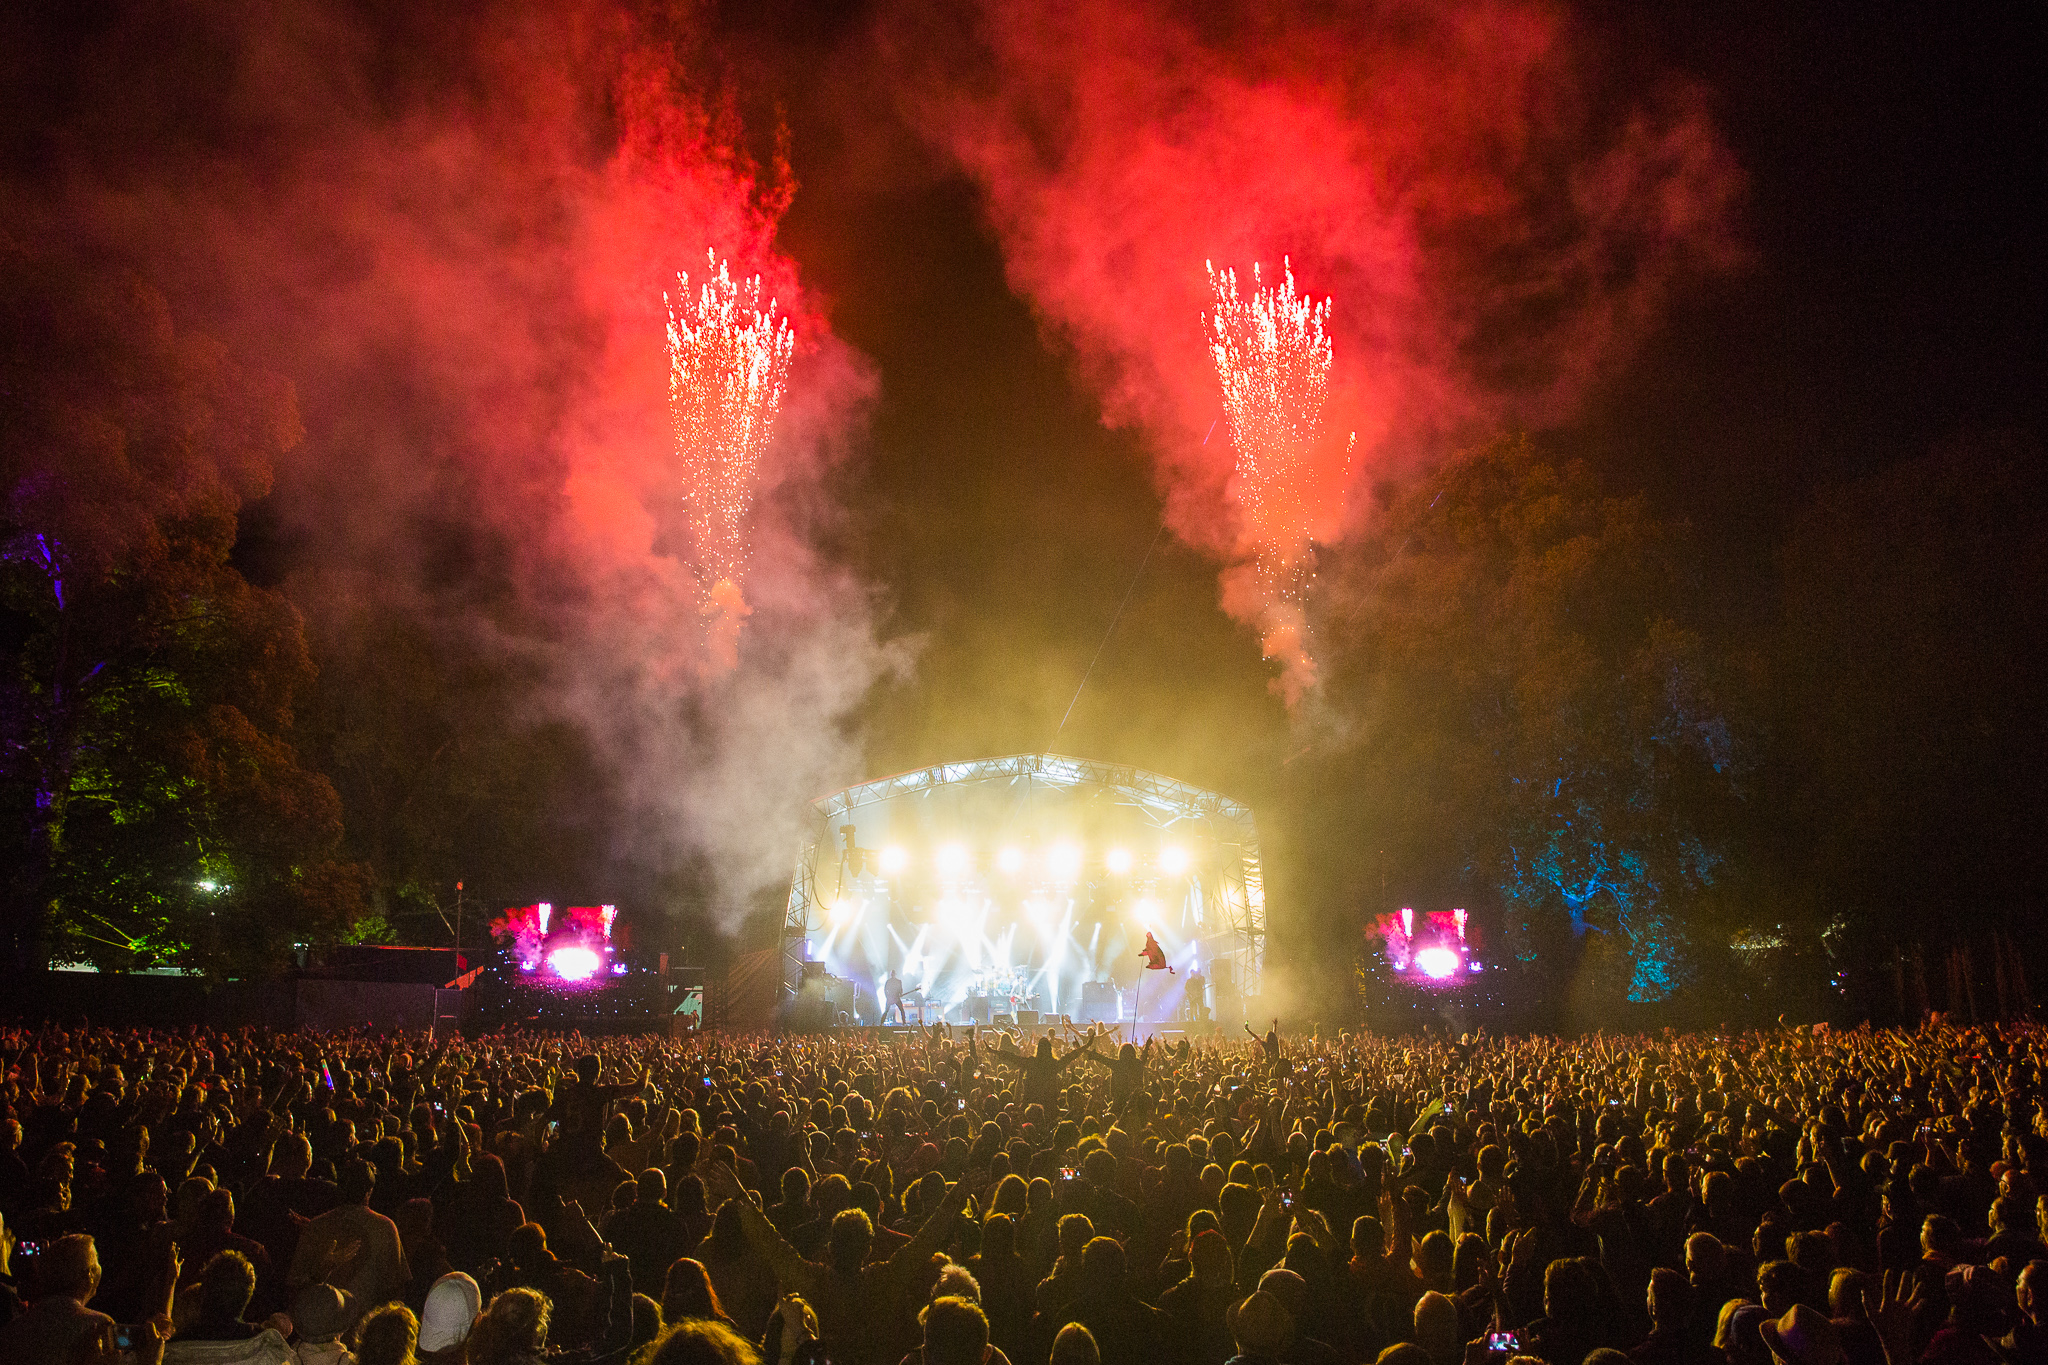 STEREOPHONICS CLOSING FRIDAY NIGHT AT KENDAL CALLING FESTIVAL - 28/07/2017  PICTURE BY: JODY HARTLEY